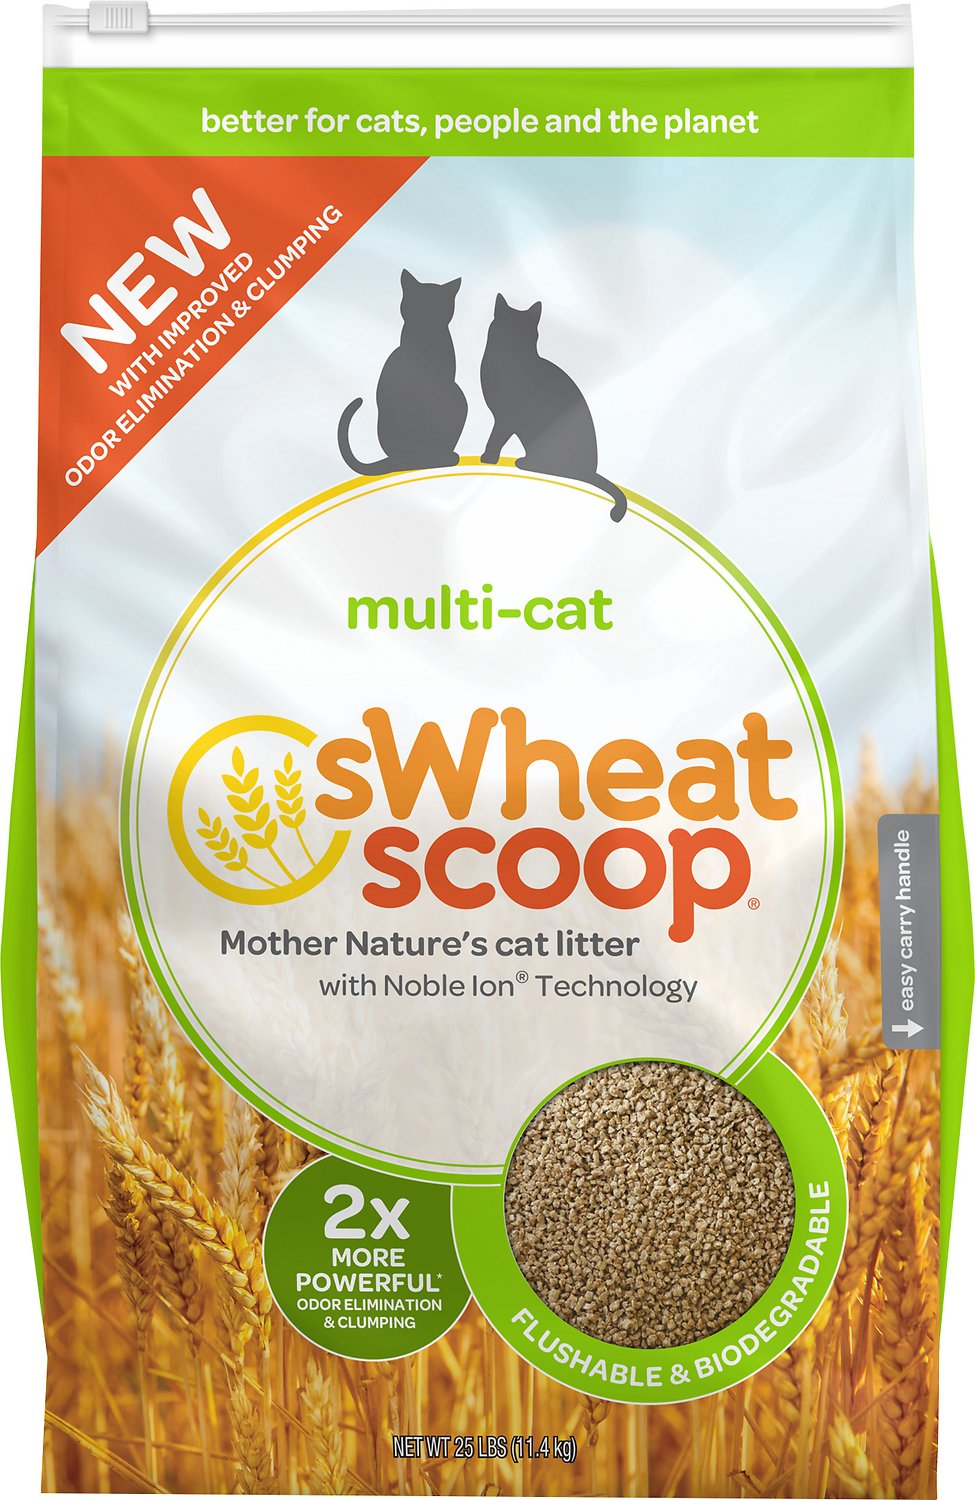 sWheat Scoop Multi-Cat Natural Wheat Cat Litter Image